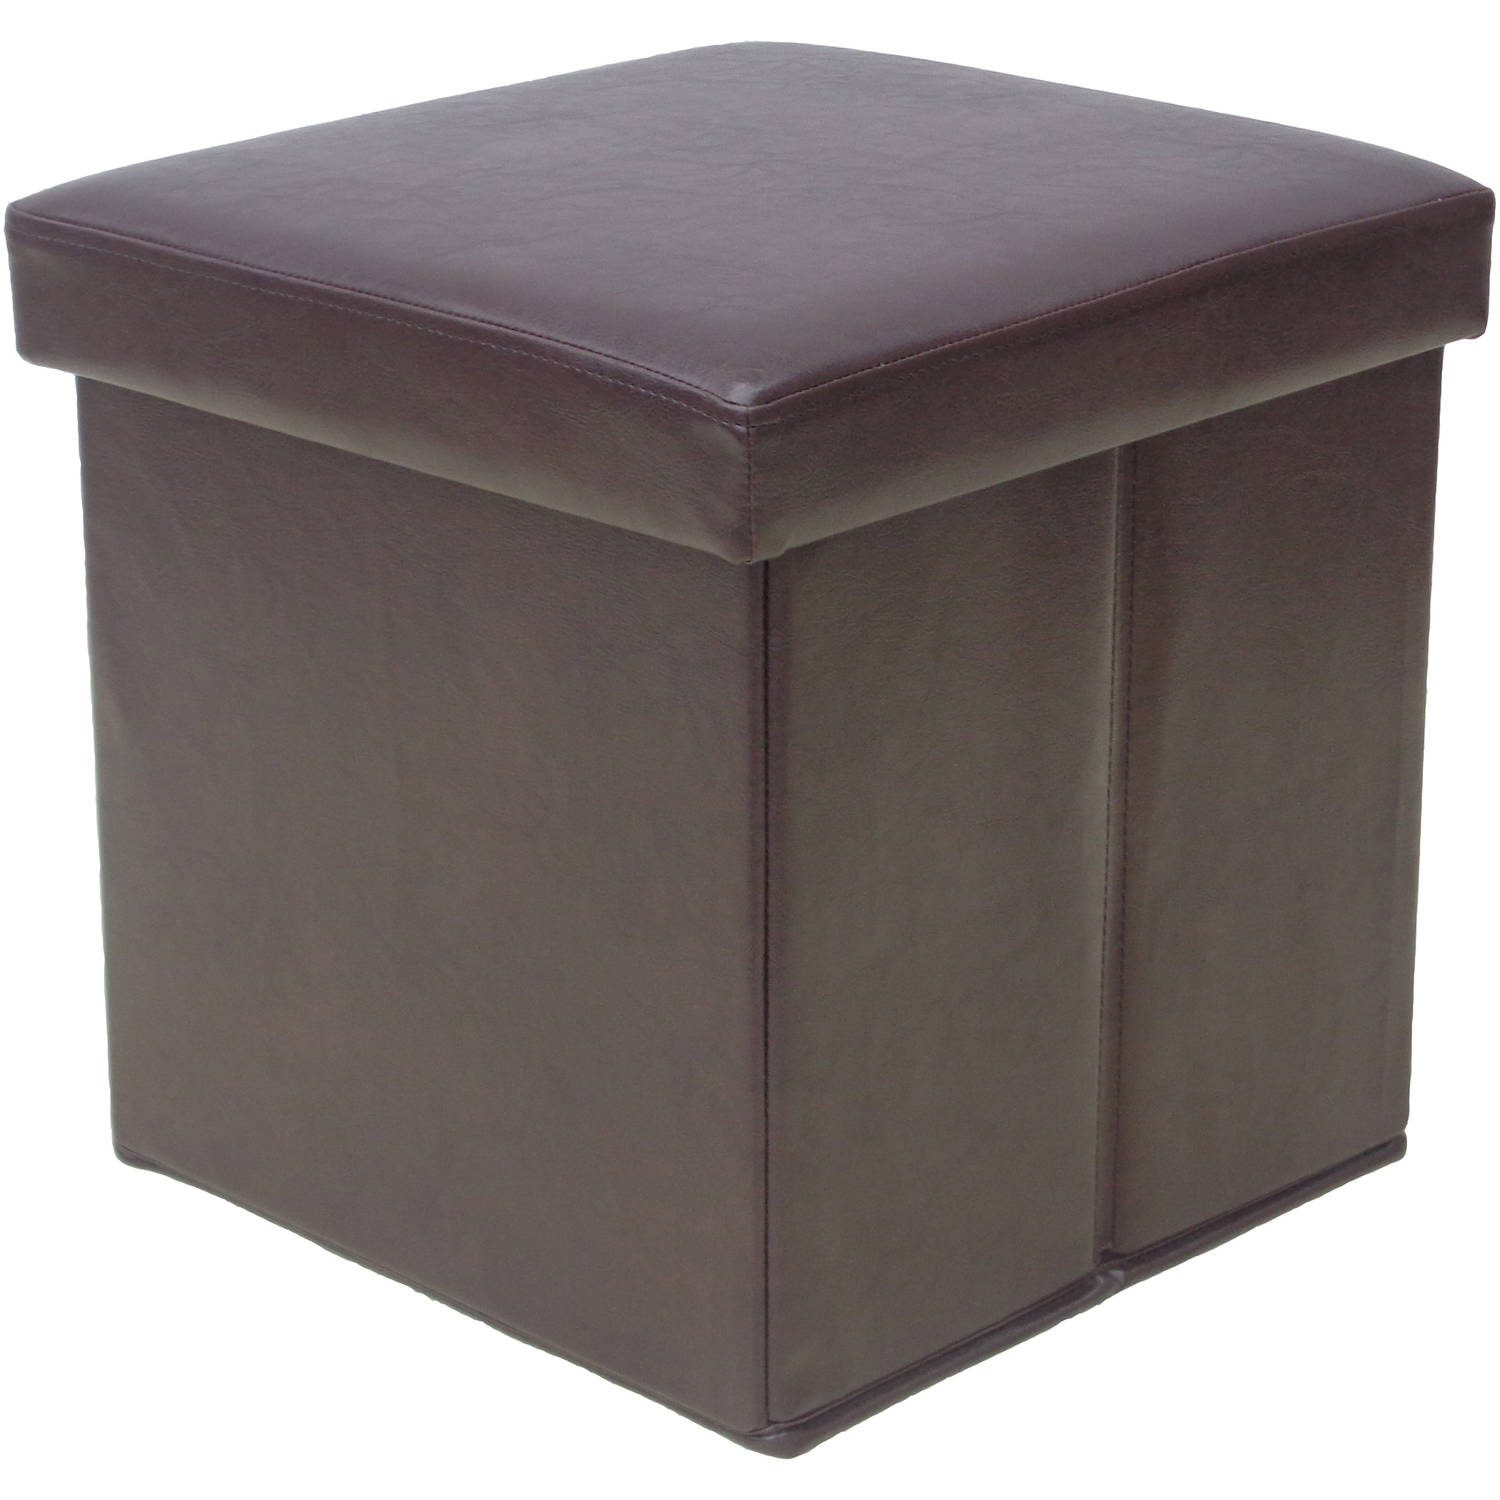 Mainstays Collapsible Storage Ottoman, Dark Brown